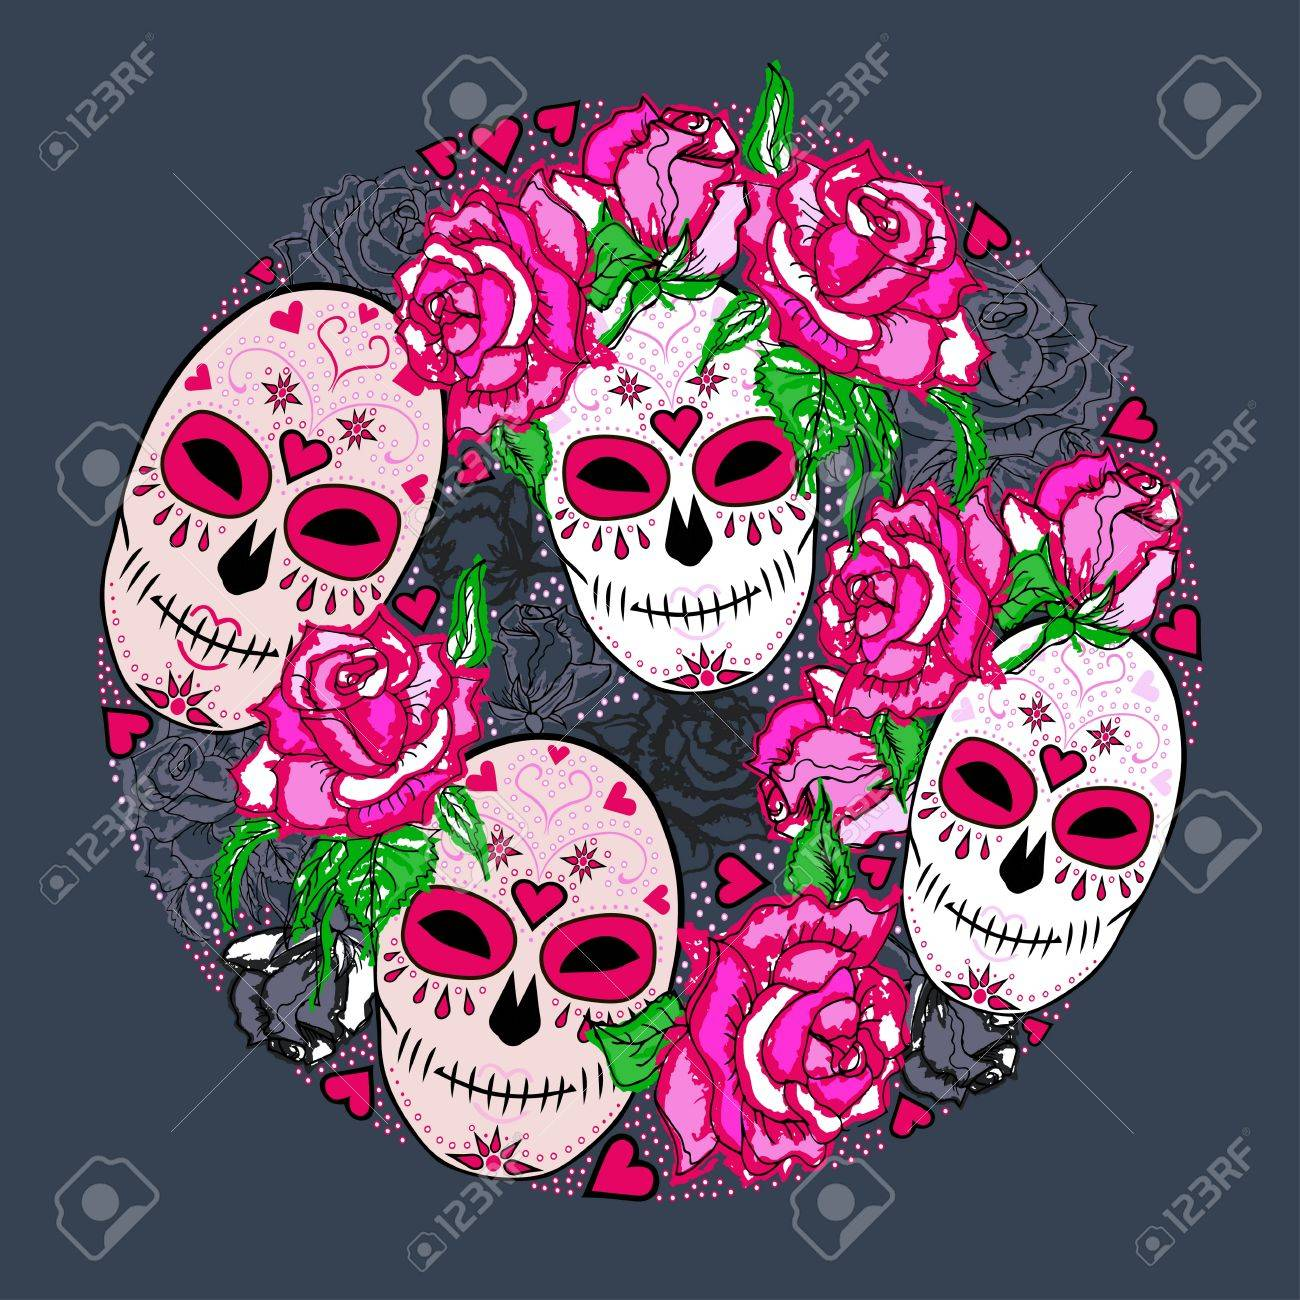 circle concept with sugar skull and pink roses day of the dead